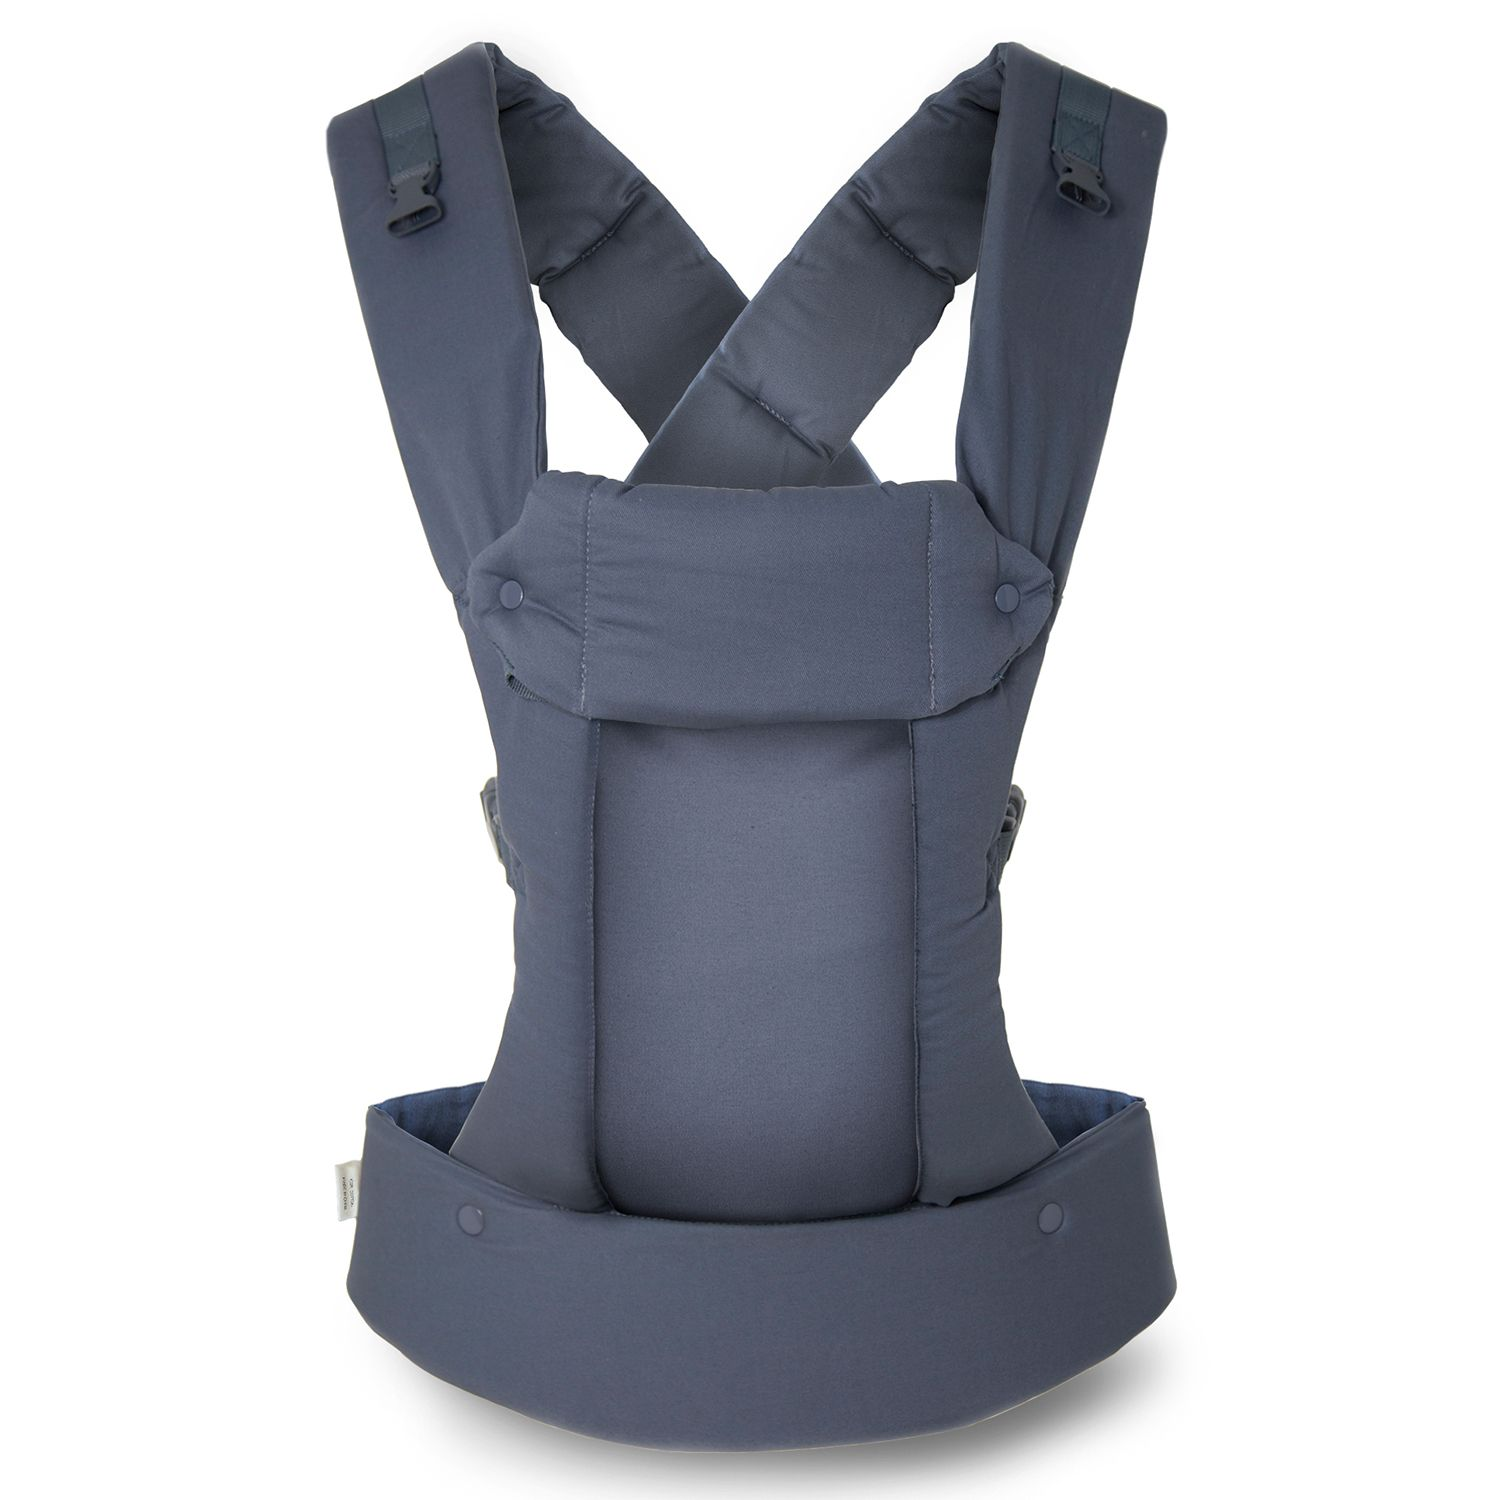 Beco Gemini Carrier w Pocket Grey by Beco Baby Carrier